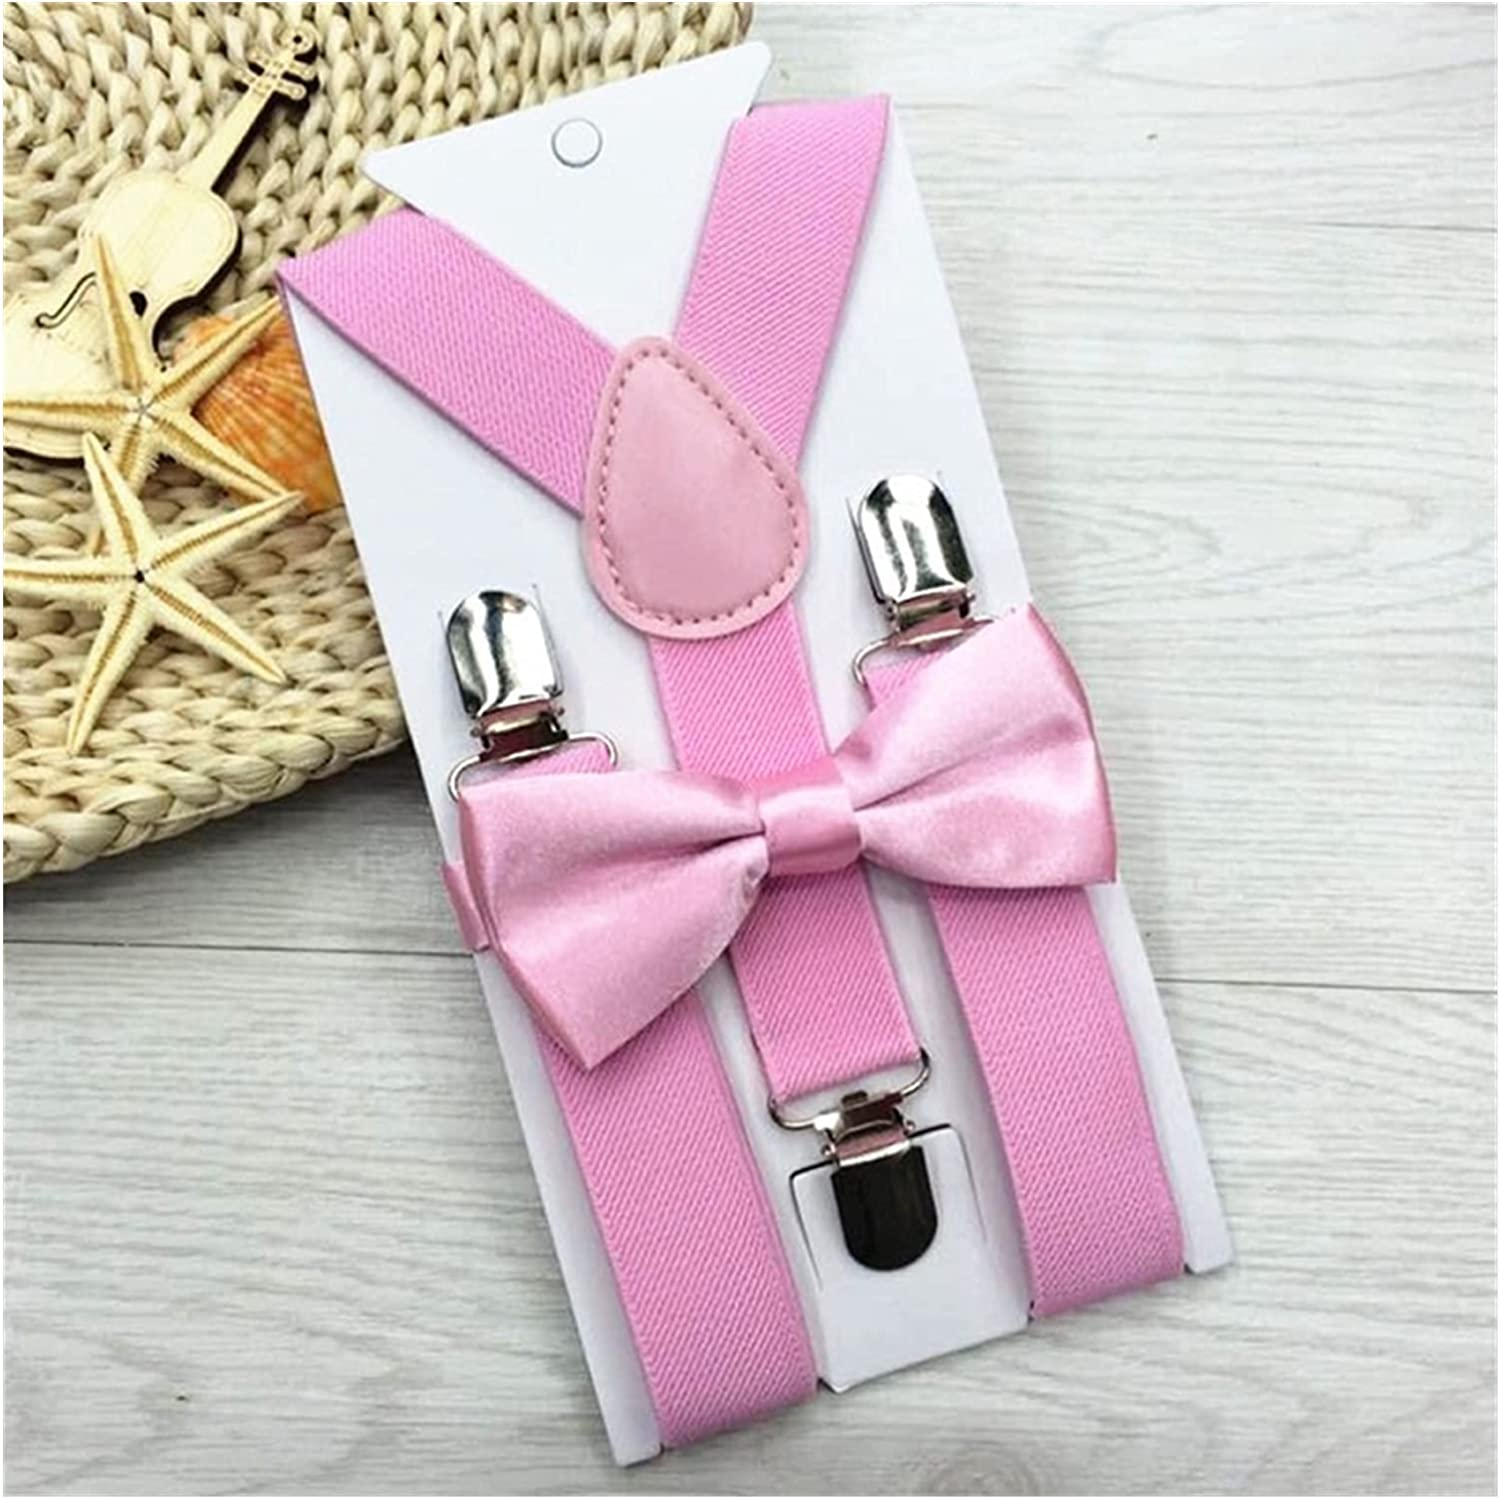 JSJJAYU Men's tie 2020 New Kids Suspenders with Bowtie Bow Tie Set Matching Ties Outfits 12 Colors Adjustable and Elastic (Farbe : 11, Größe : One Size)